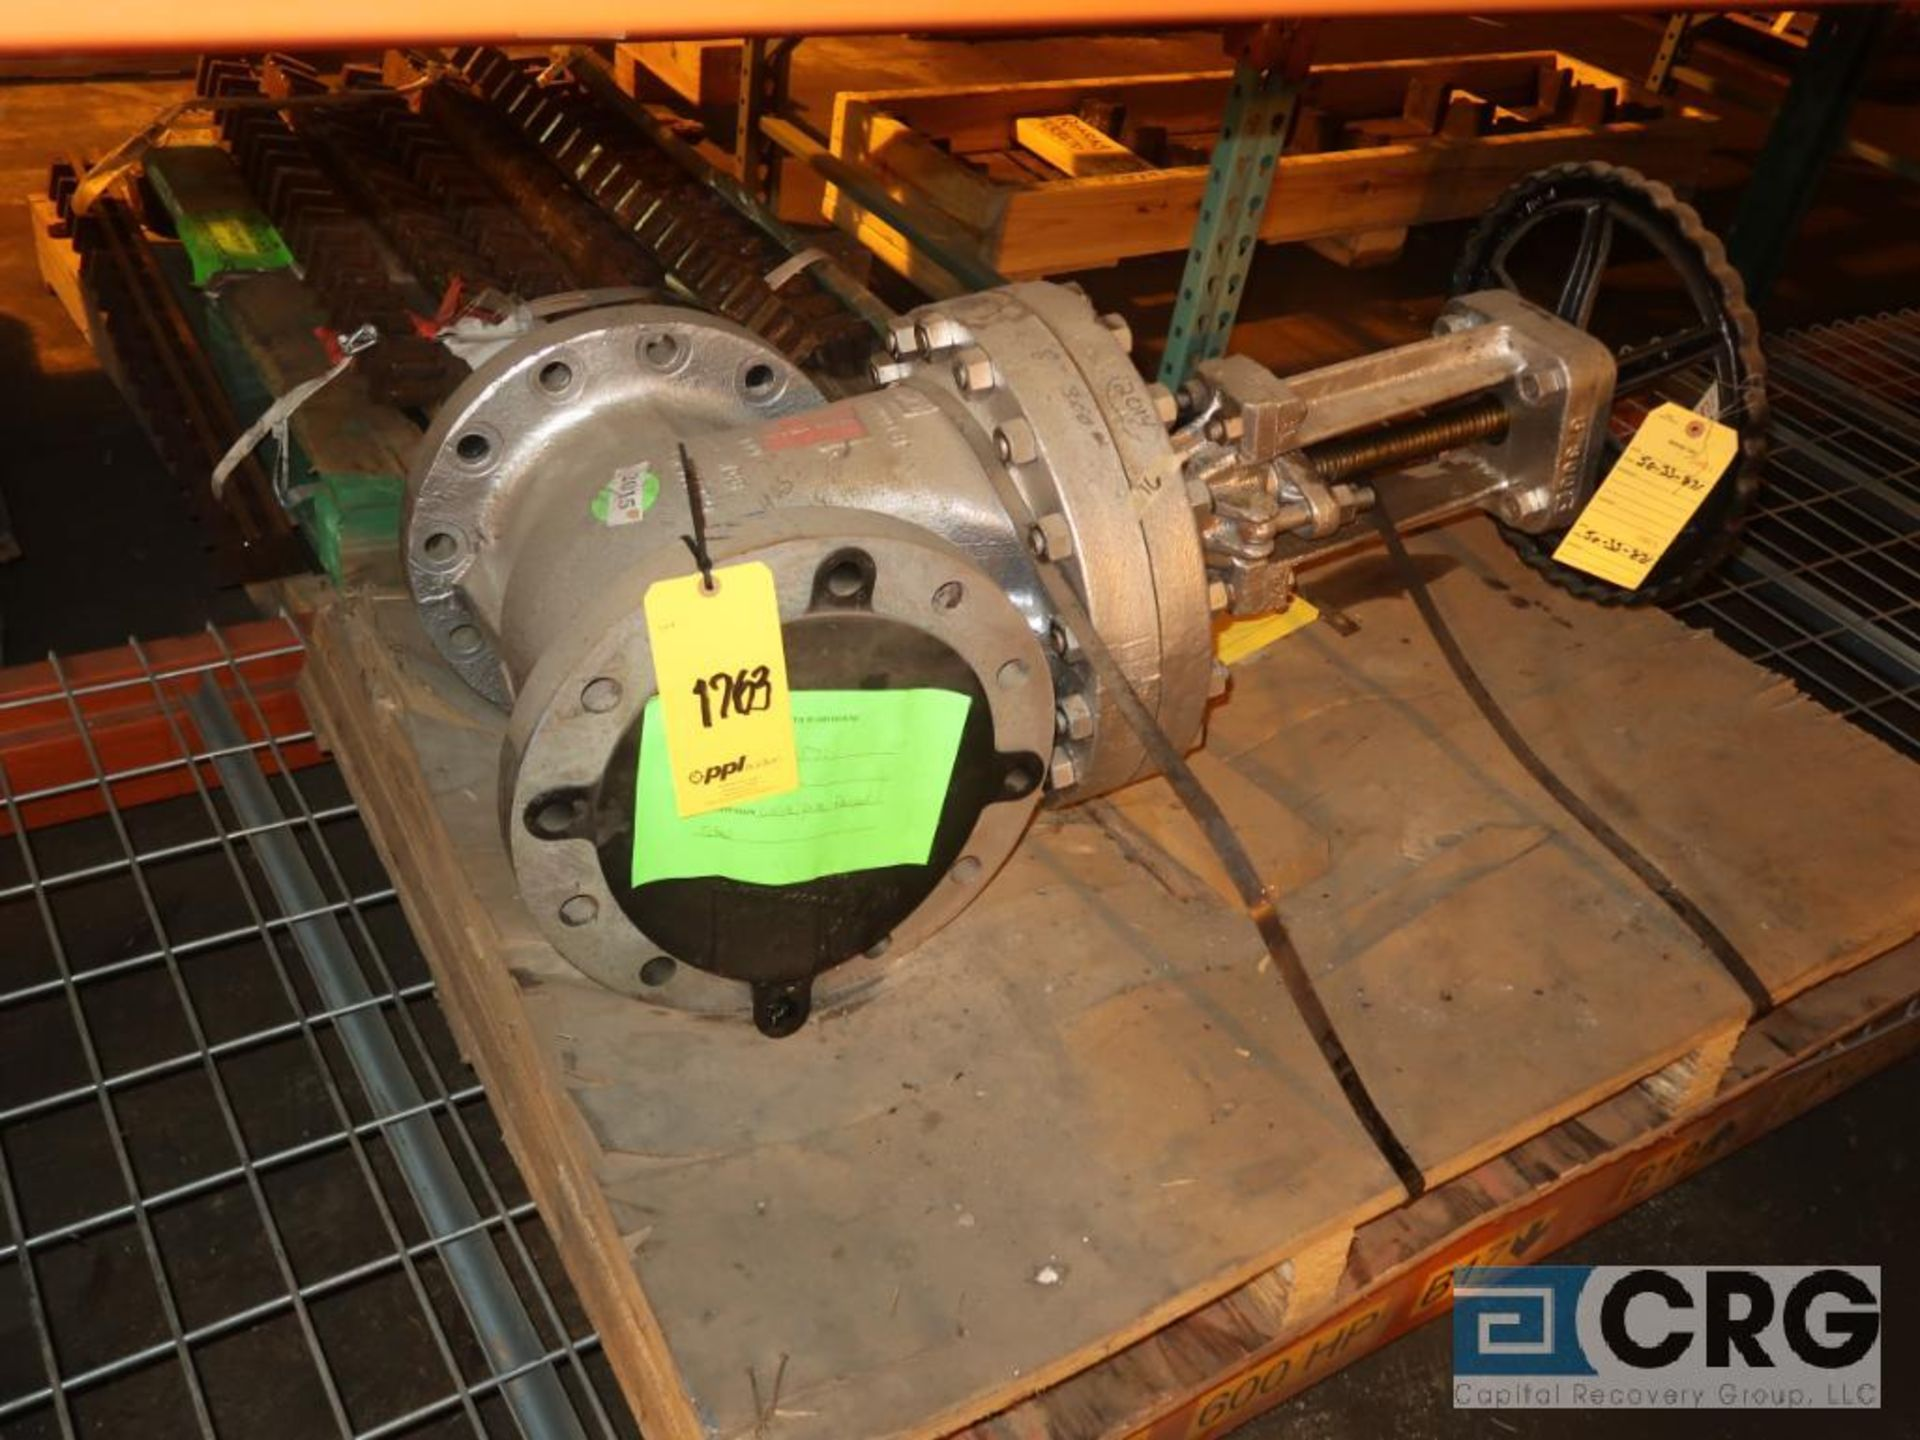 Lot of assorted parts including expansion joint, valves, fan blade, and rotors (Next Bay Cage Area) - Image 15 of 15